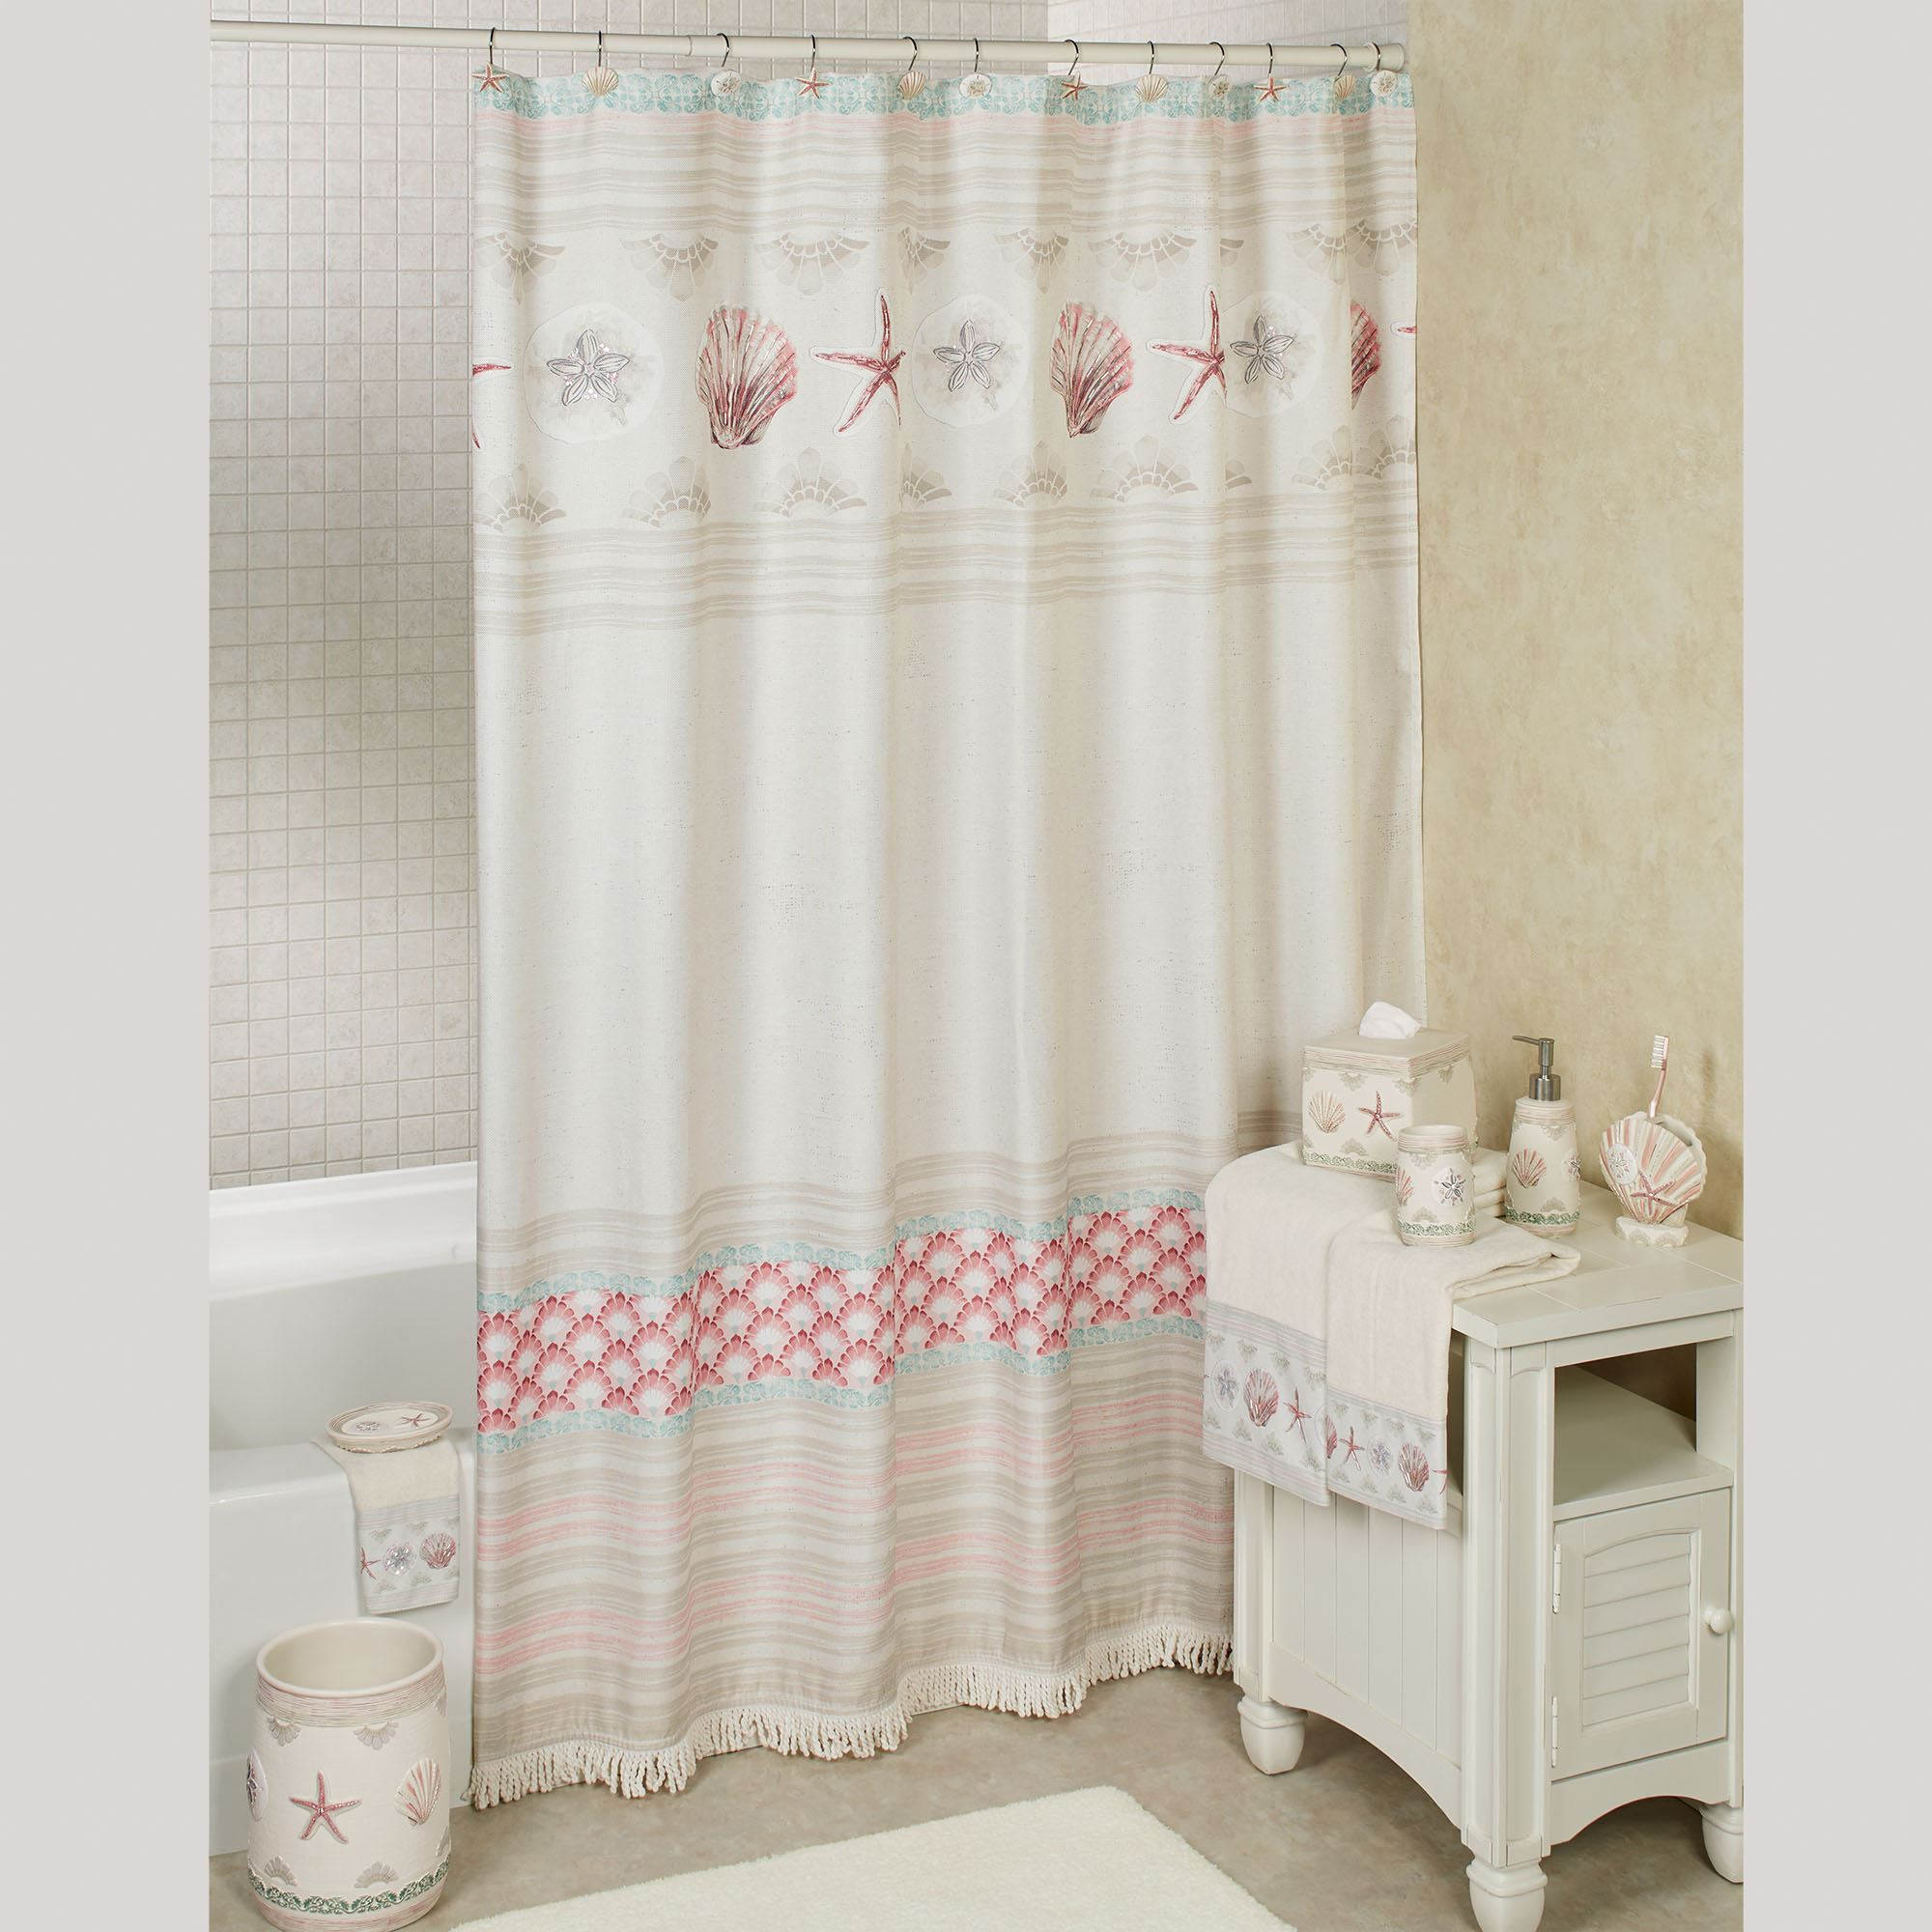 Coronado Shower Curtain Multi Warm 72 X